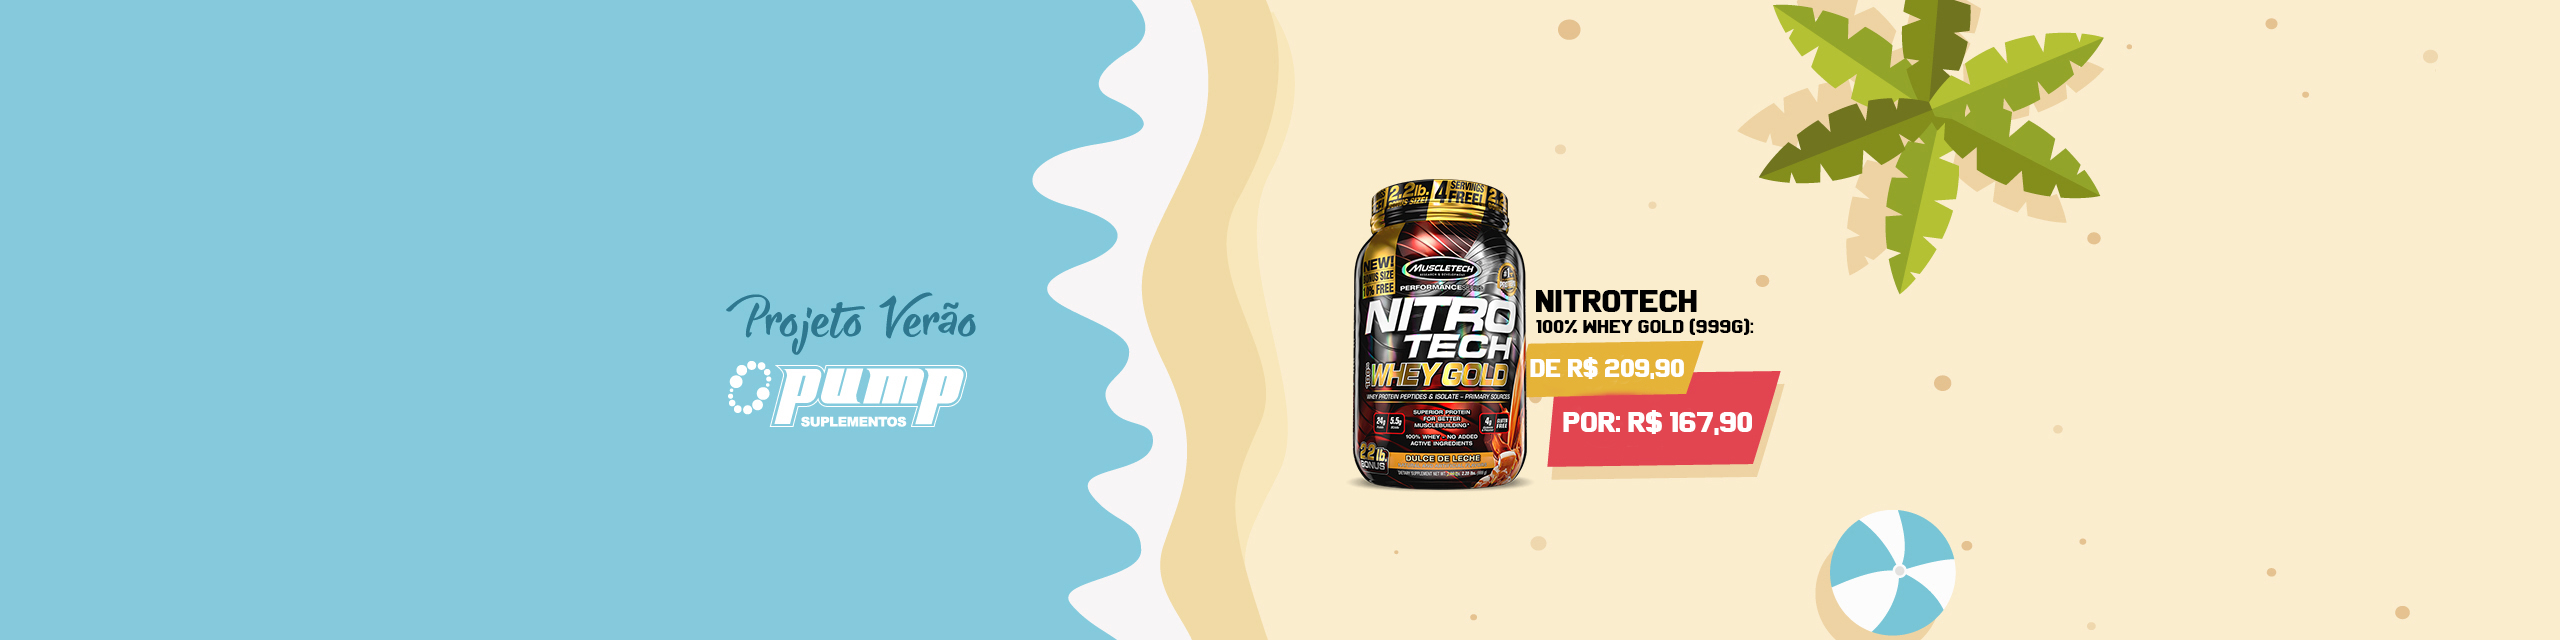 Nitrotech 100% Whey Gold 20% Off